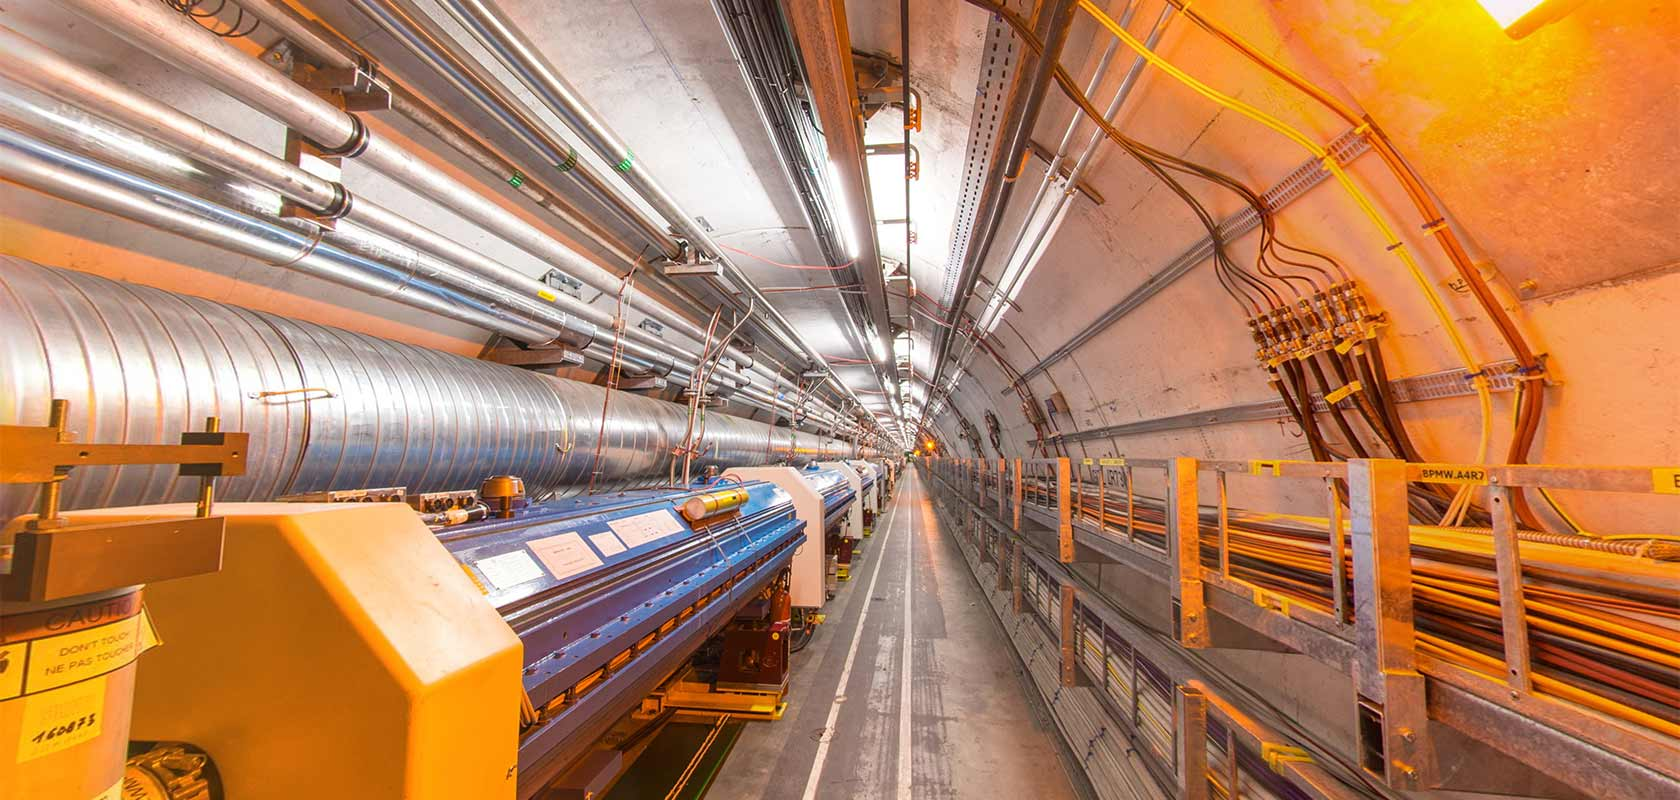 K Composite explains the Large Hadron Collider